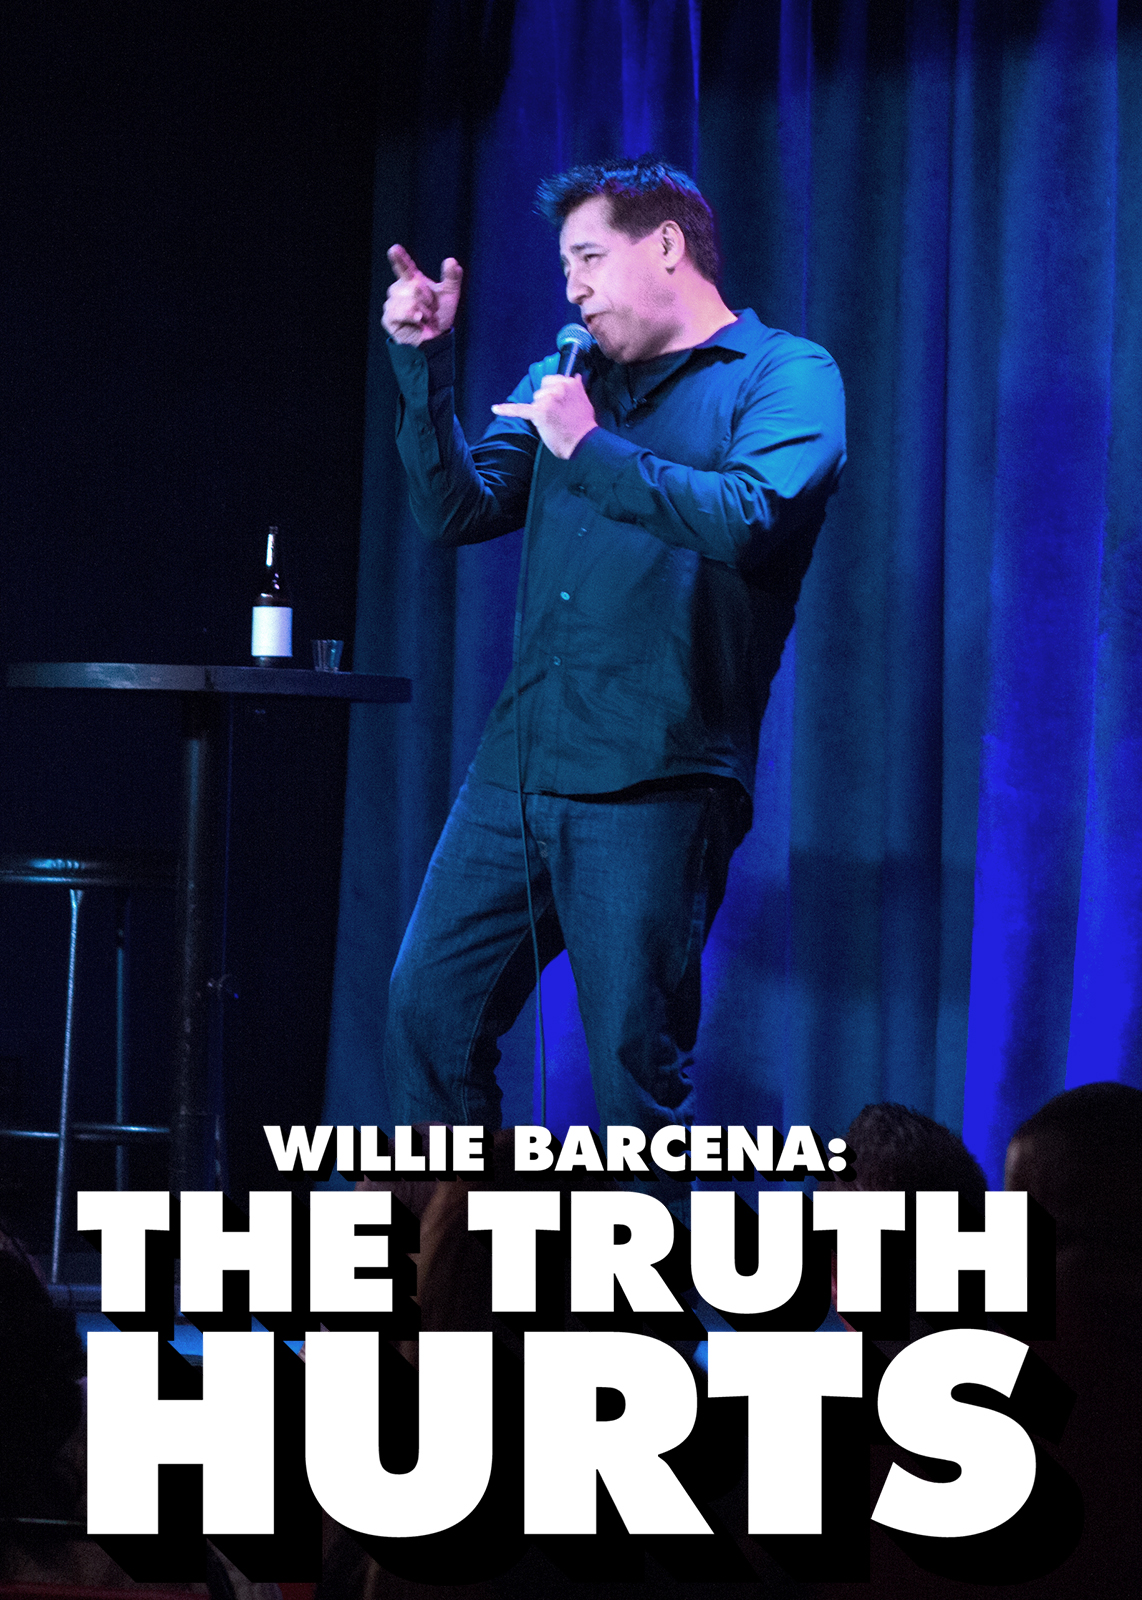 image Willie Barcena: The Truth Hurts Watch Full Movie Free Online